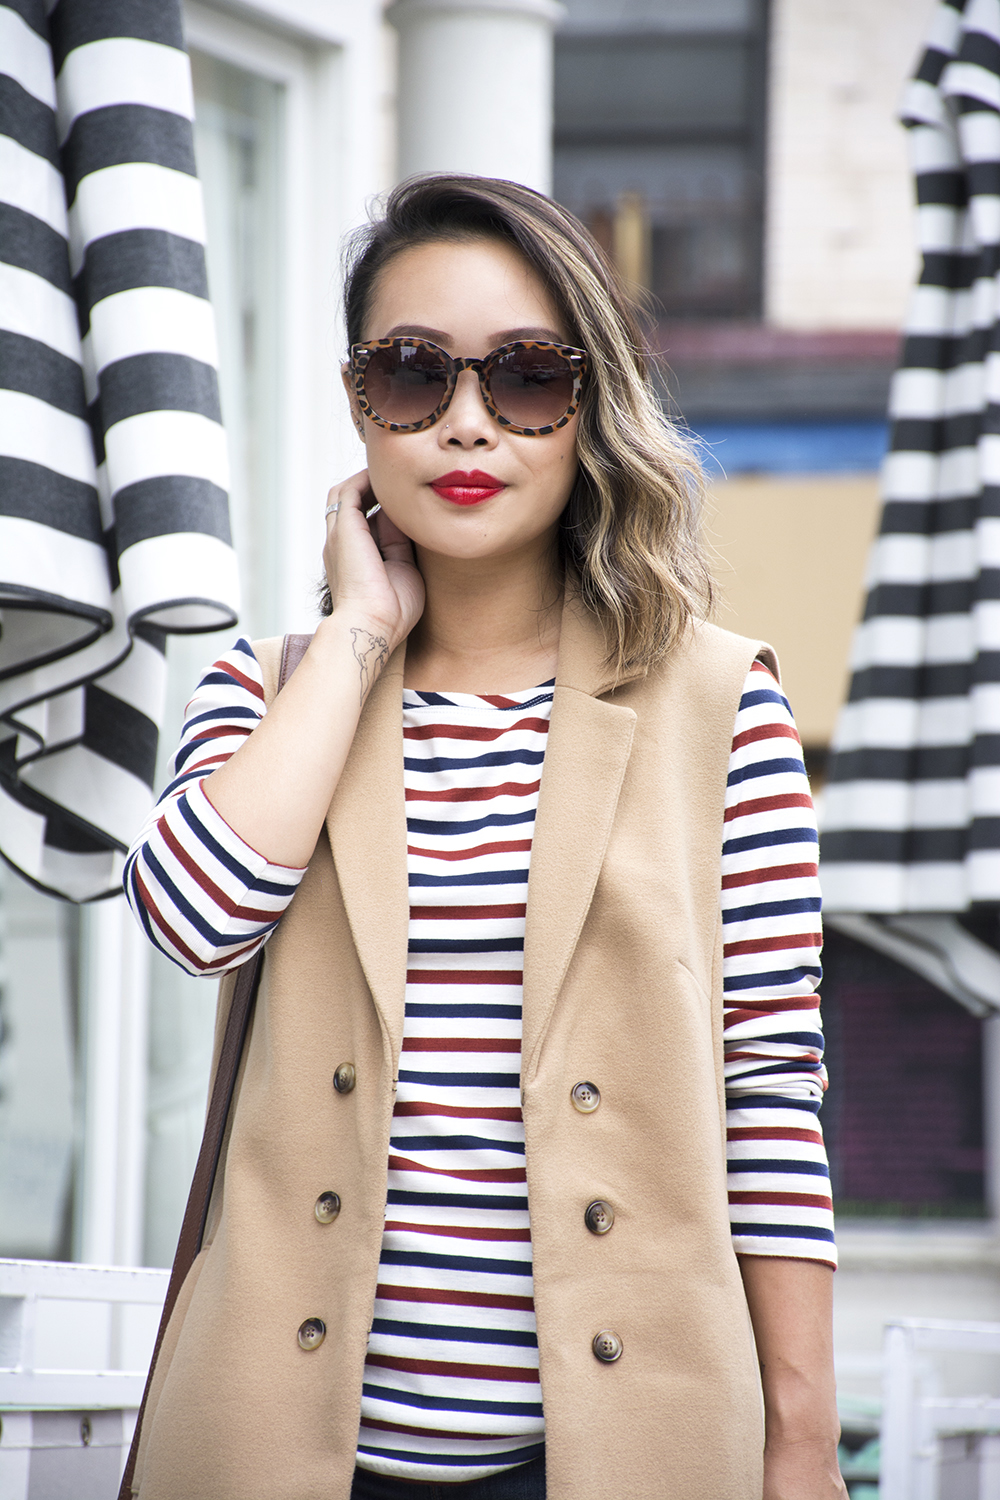 07nyc-newyork-city-stripes-travel-fashion-style